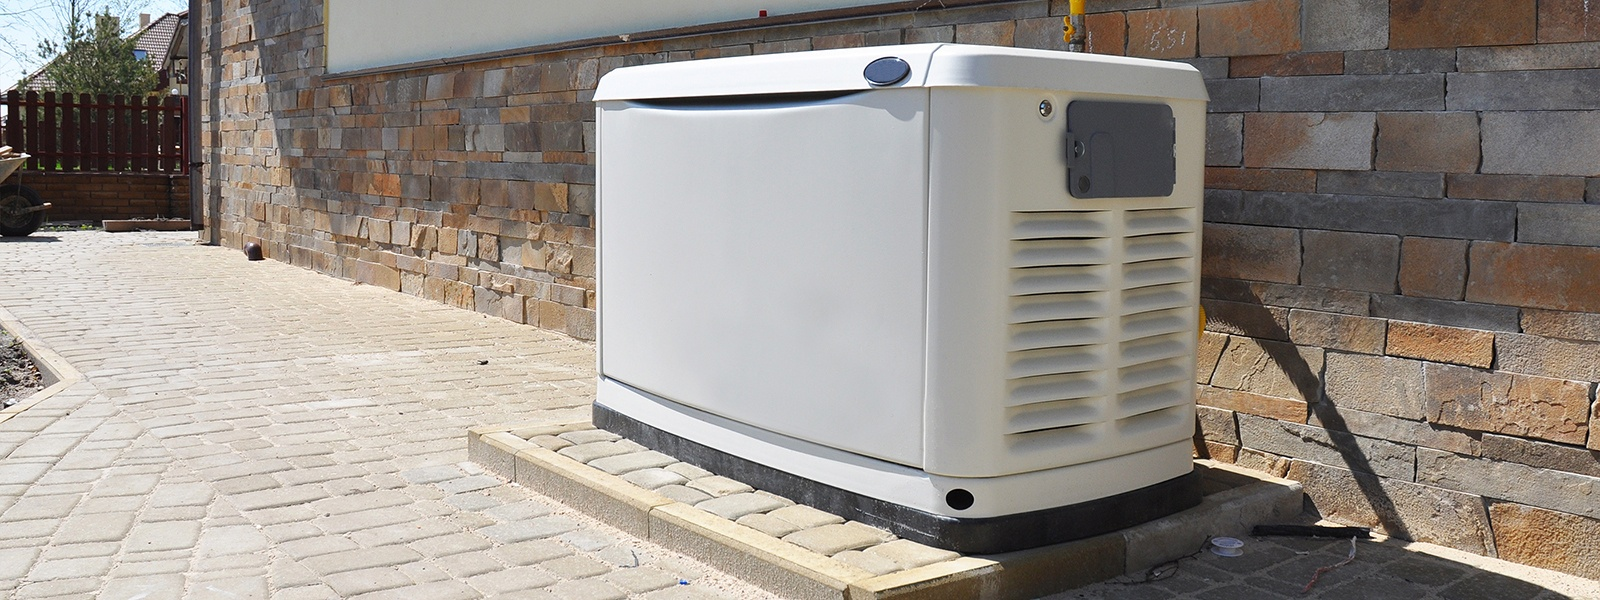 Texas Electricity Concerns and Backup Home Generators